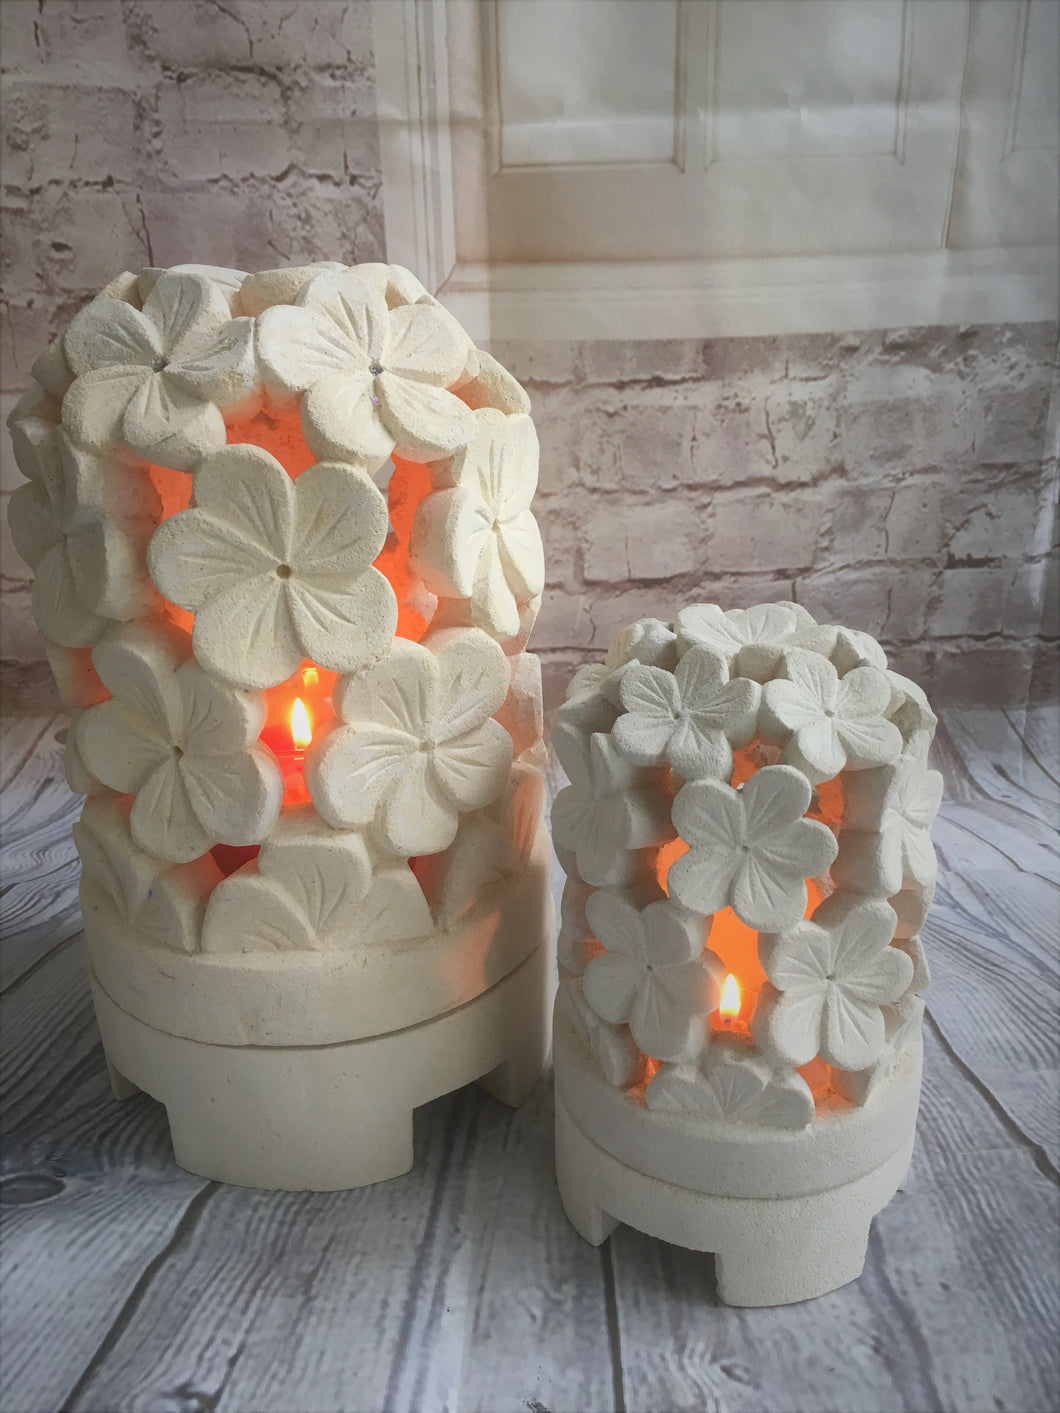 Balinese Flower Dome Limestone Candle Holder or Table Centrepiece